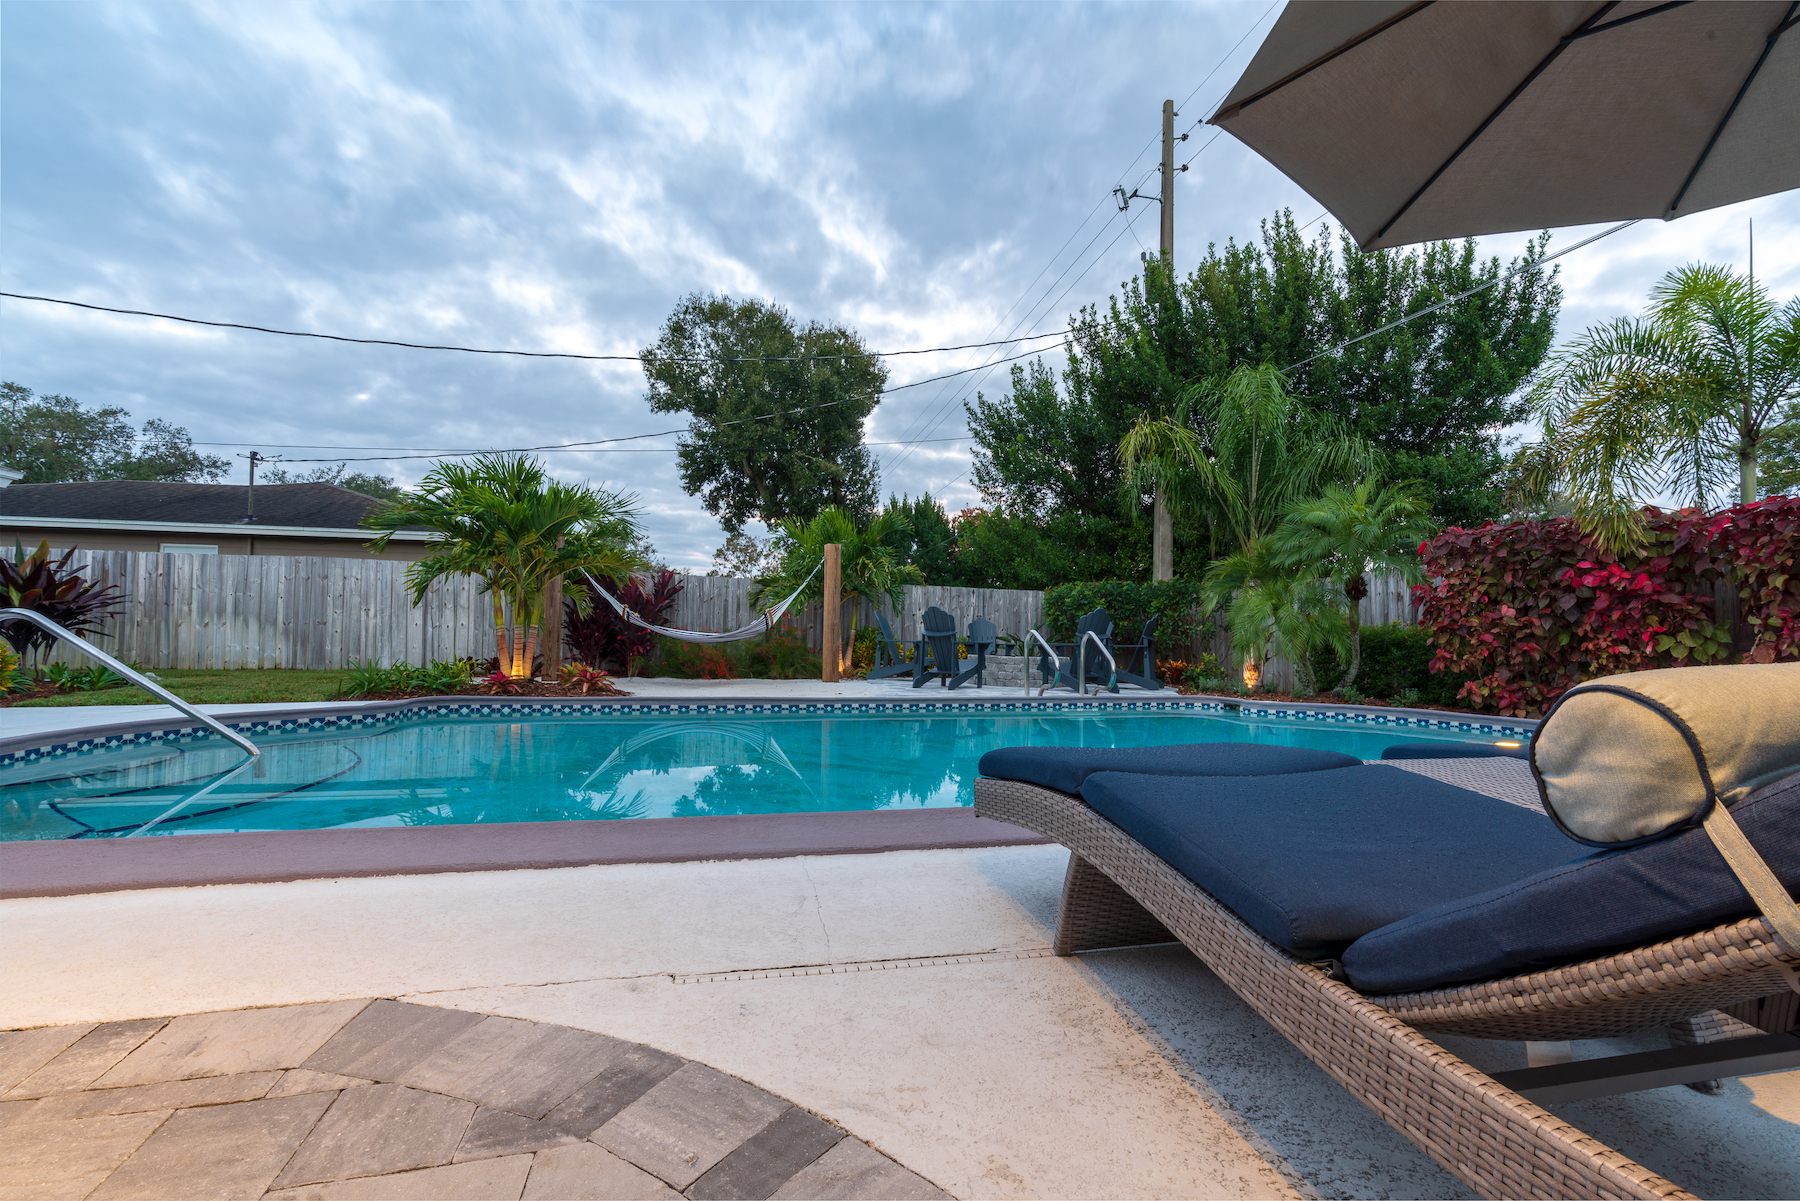 Pool patio with concrete and pavers